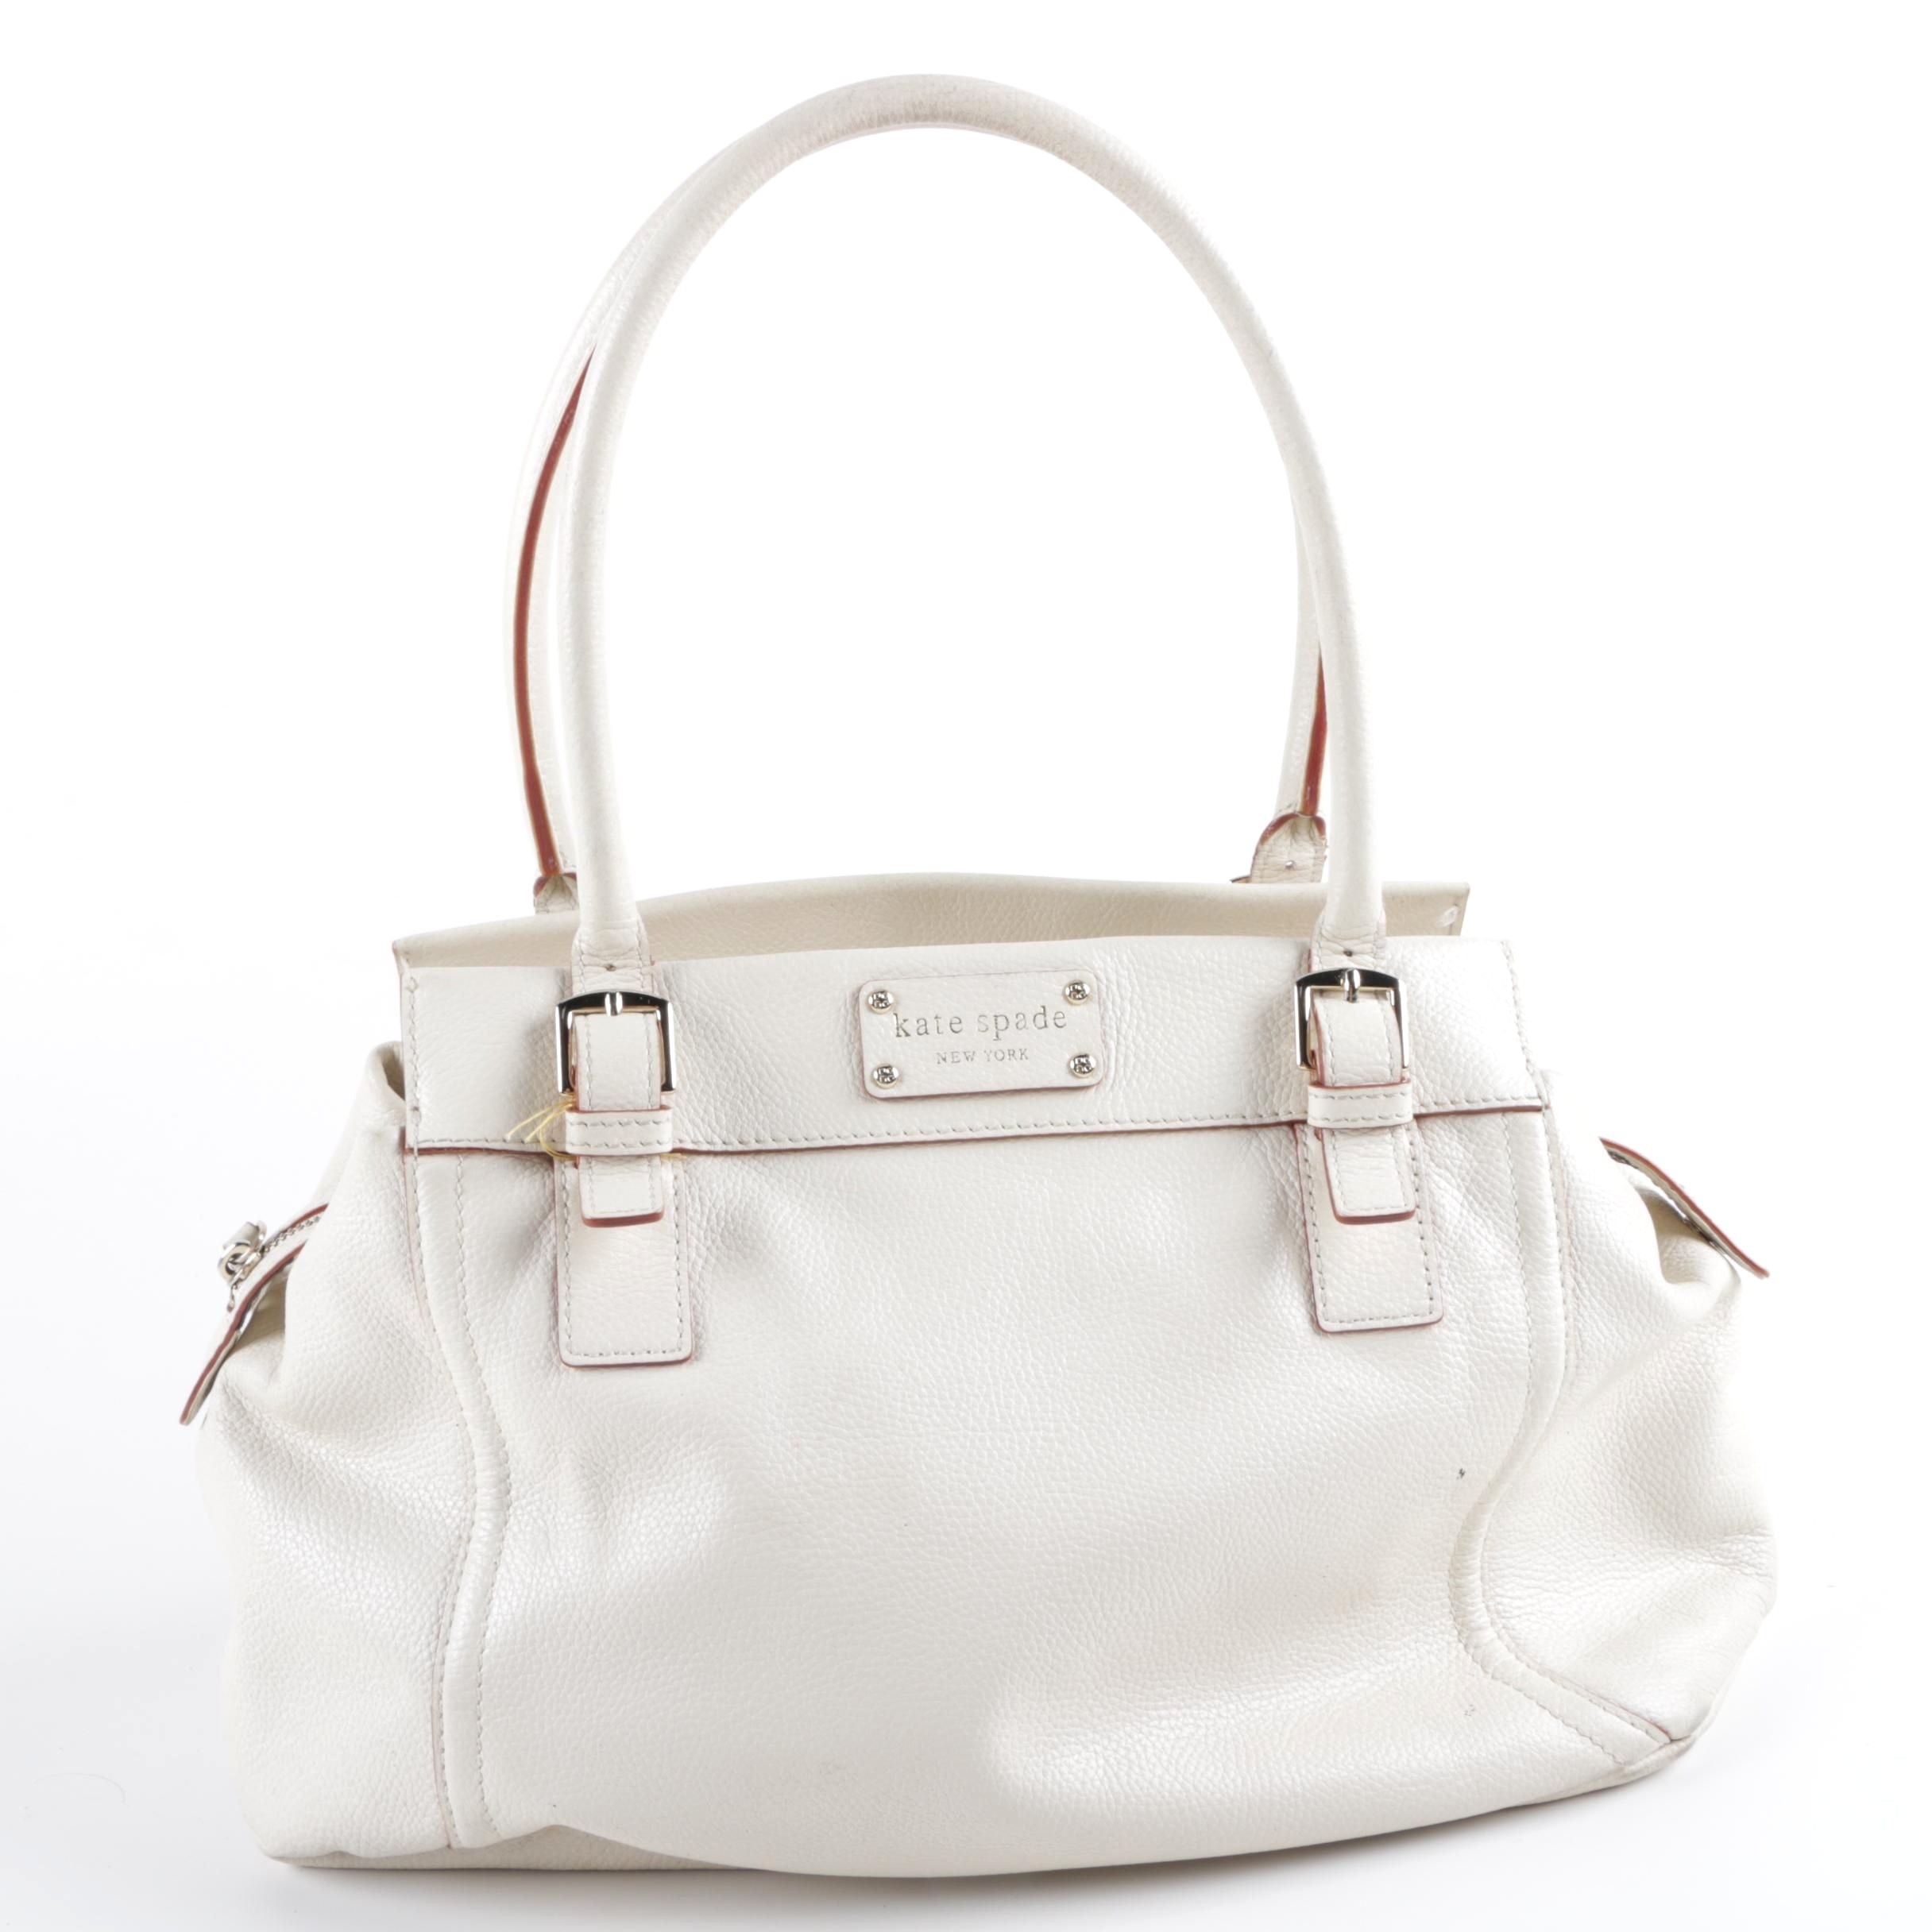 Kate Spade New York White Leather Satchel